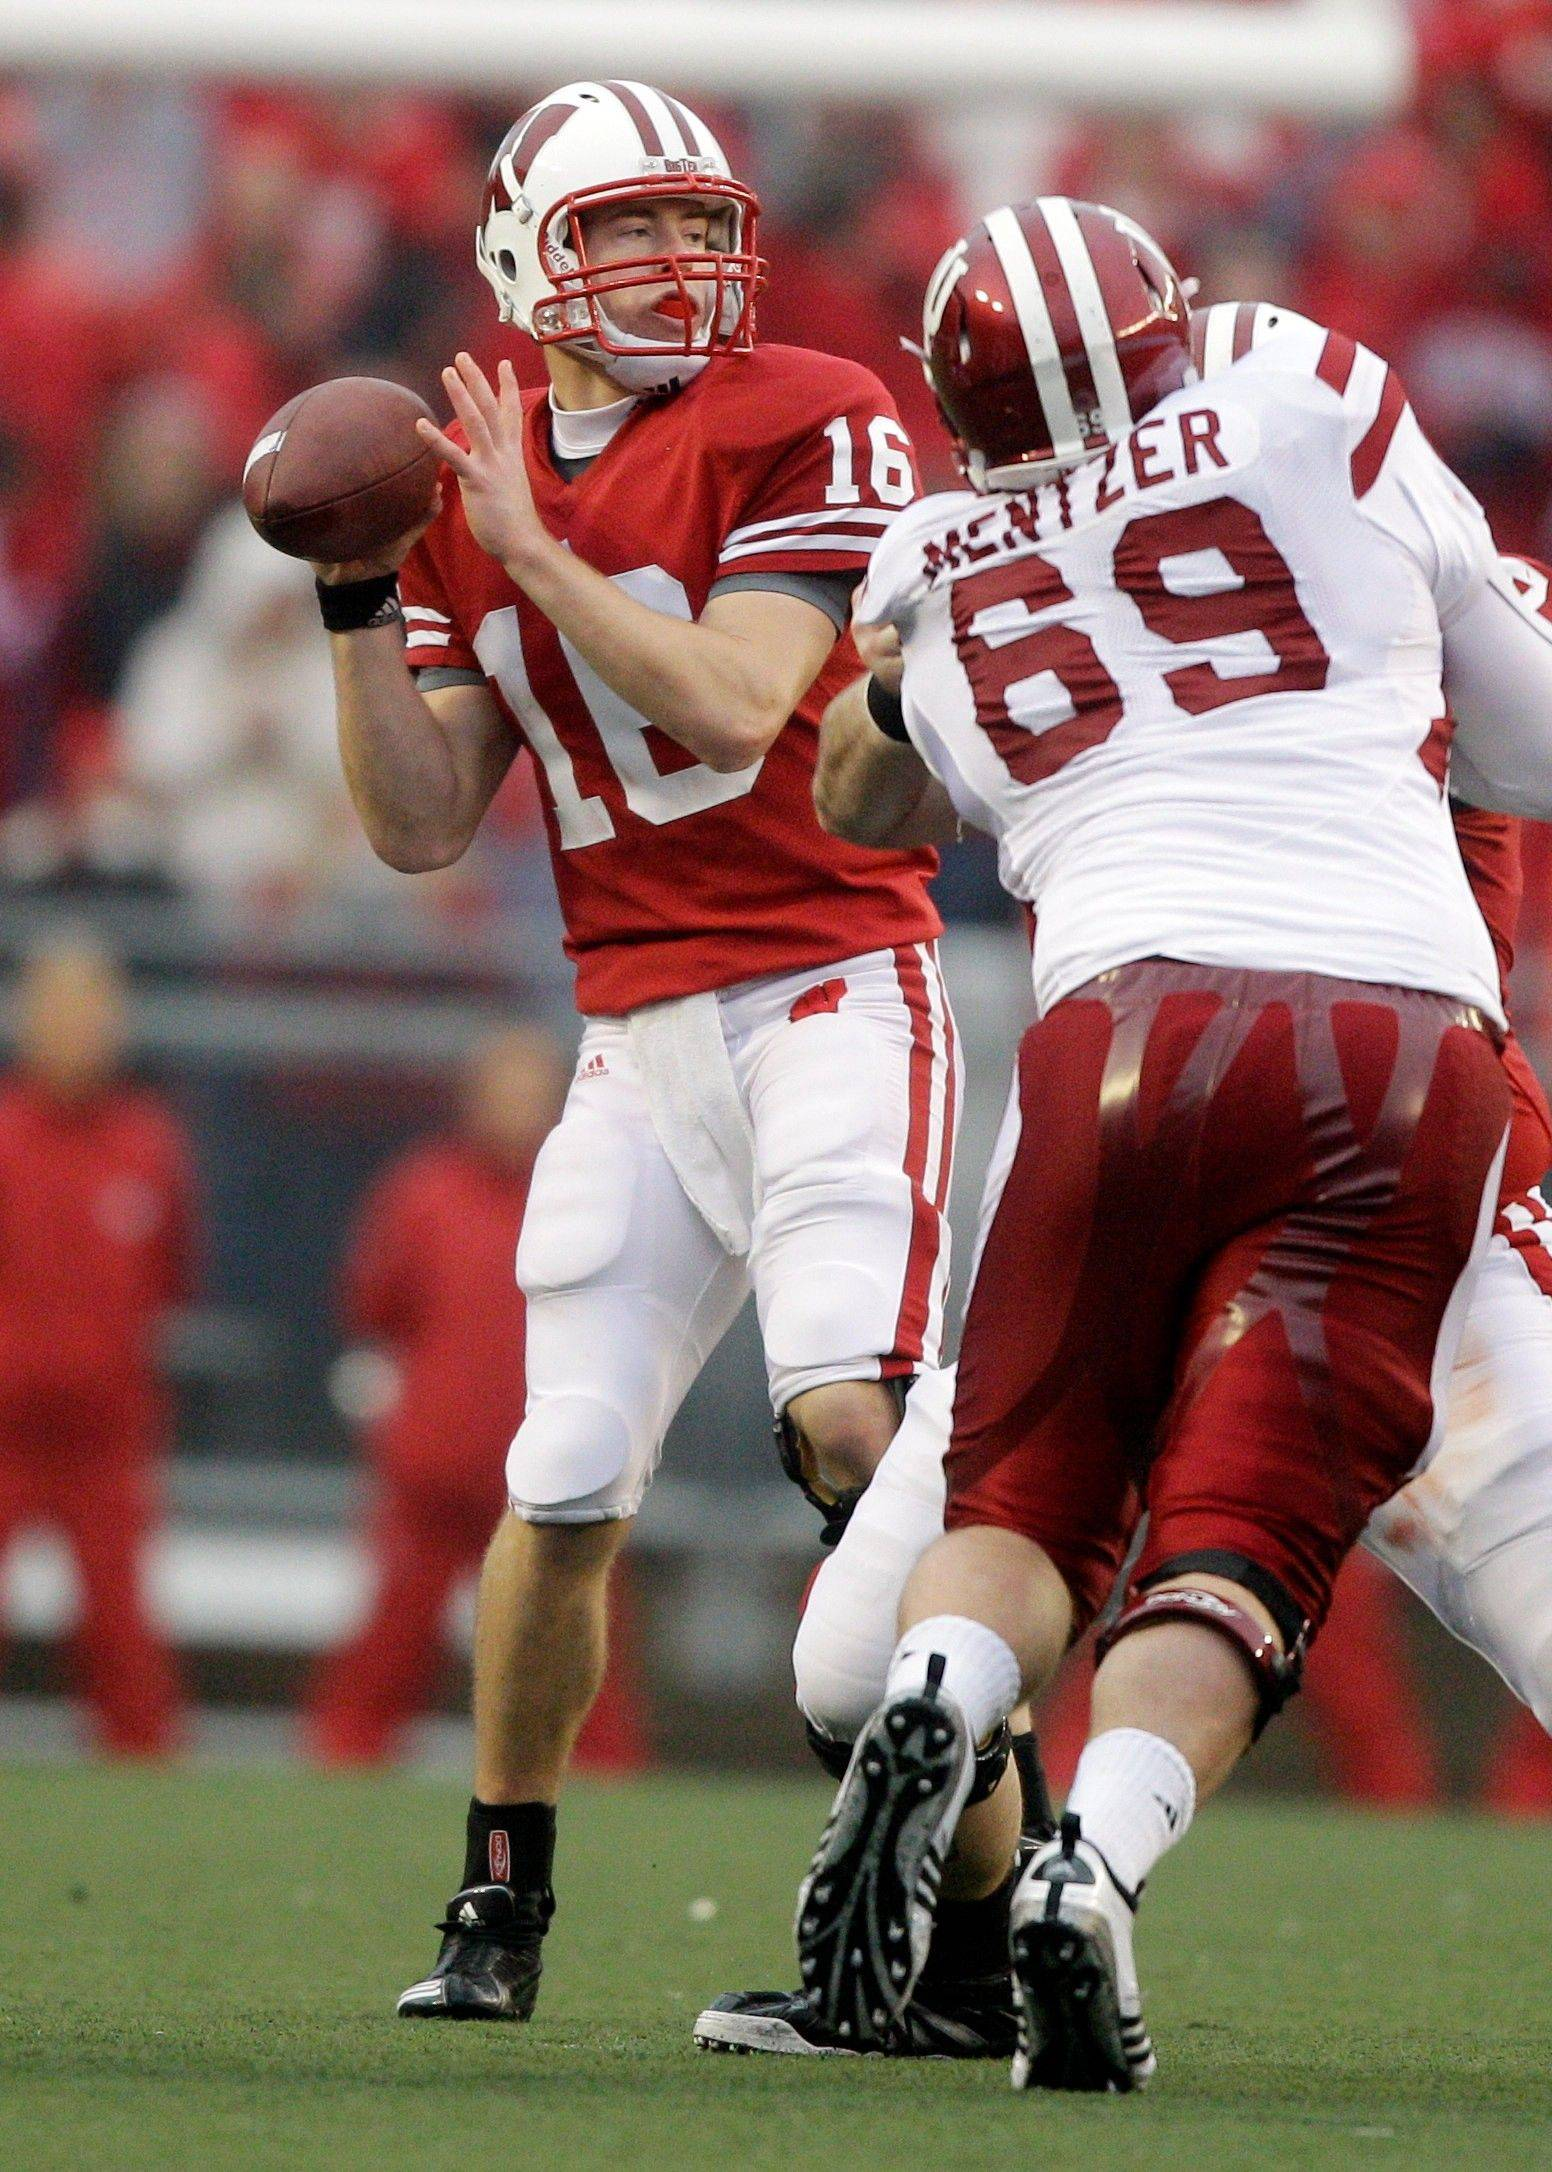 He manages the game as well as anyone in the Big Ten, which is why Wisconsin quarterback Scott Tolzien is playing for a Big Ten title on Saturday.